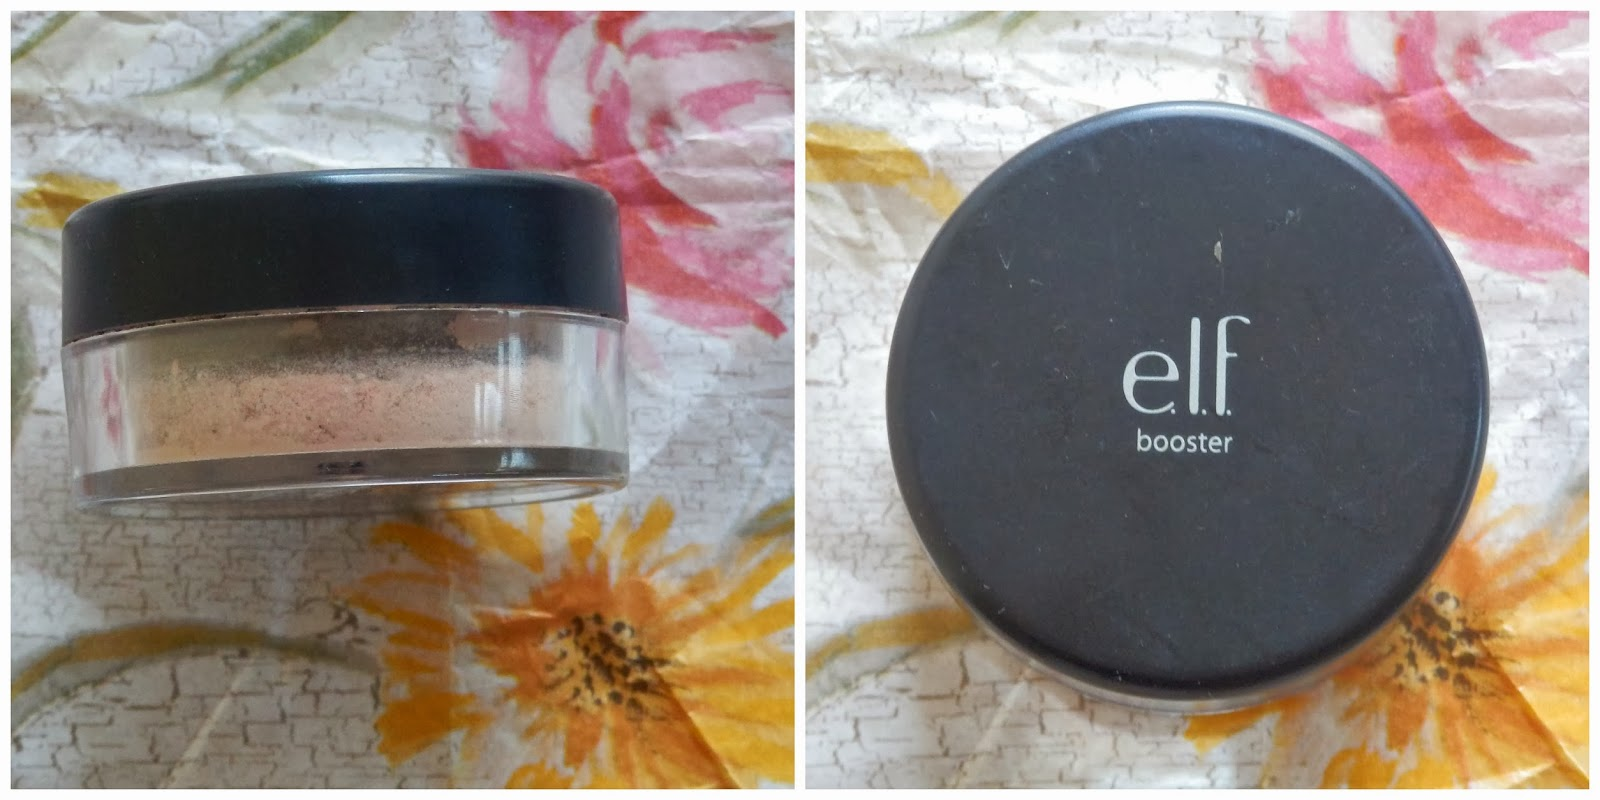 e.l.f. booster in sheer